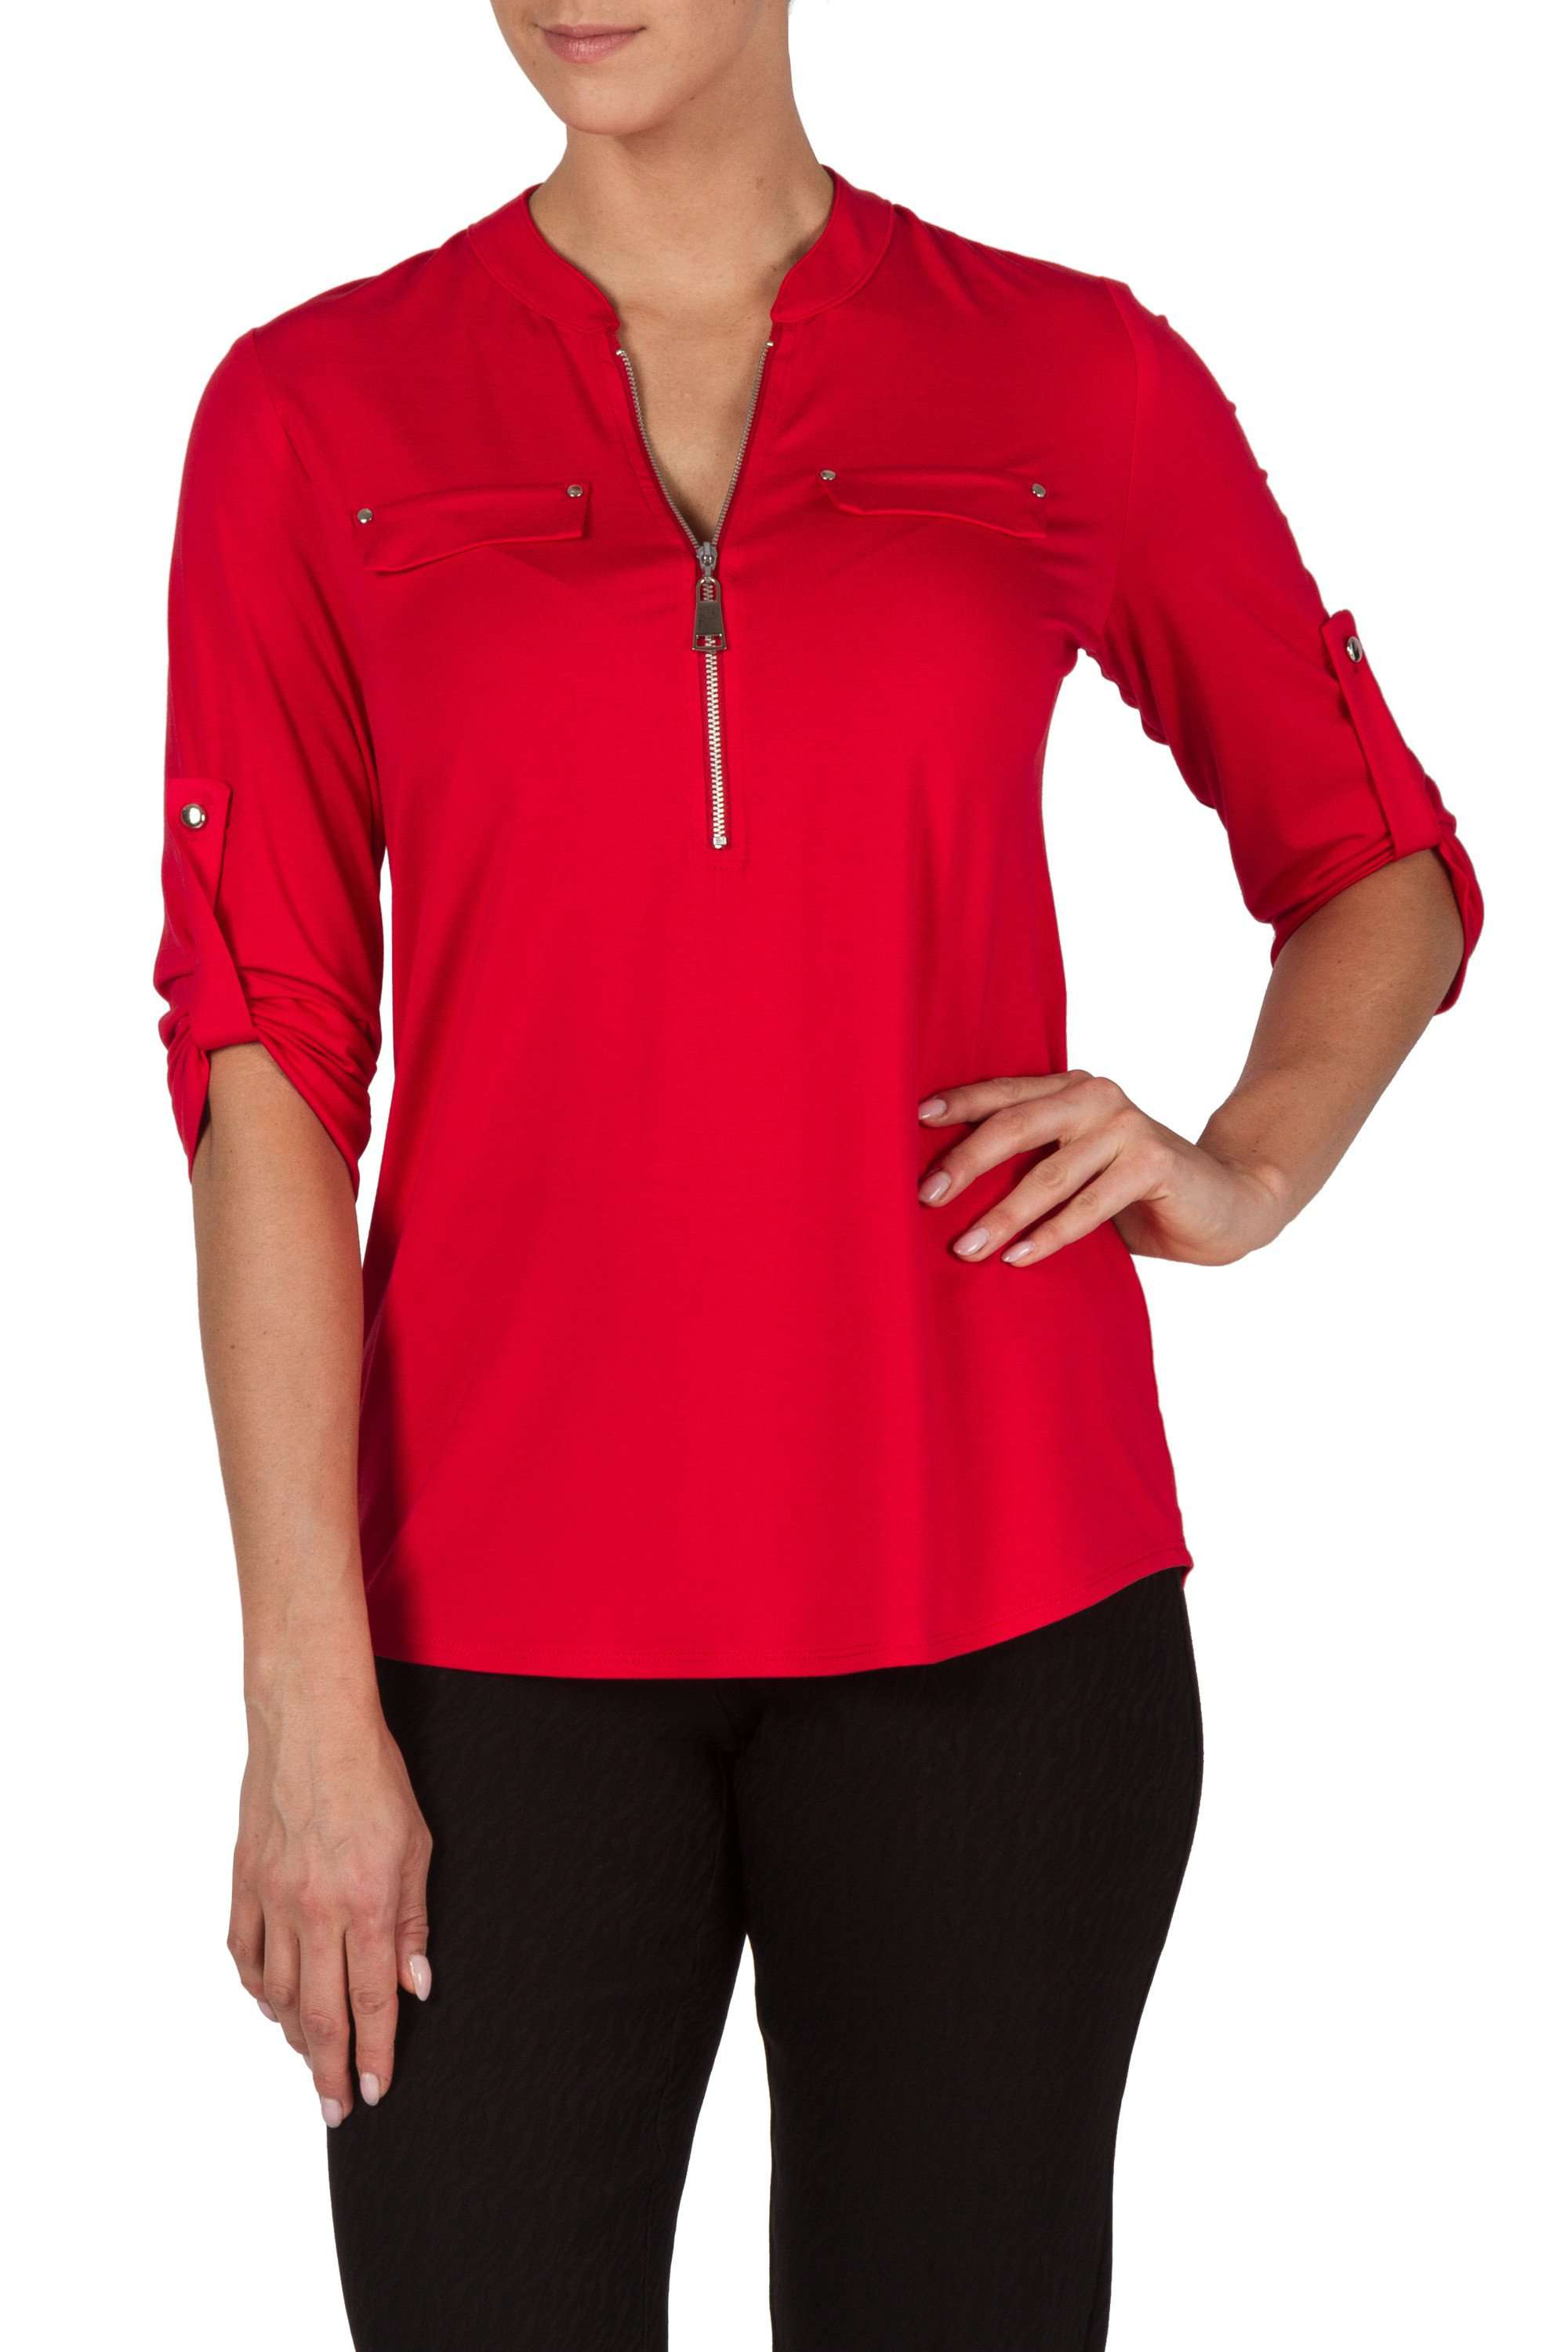 Womens Red Blouse On Sale - Made in Canada - Yvonne Marie - Yvonne Marie